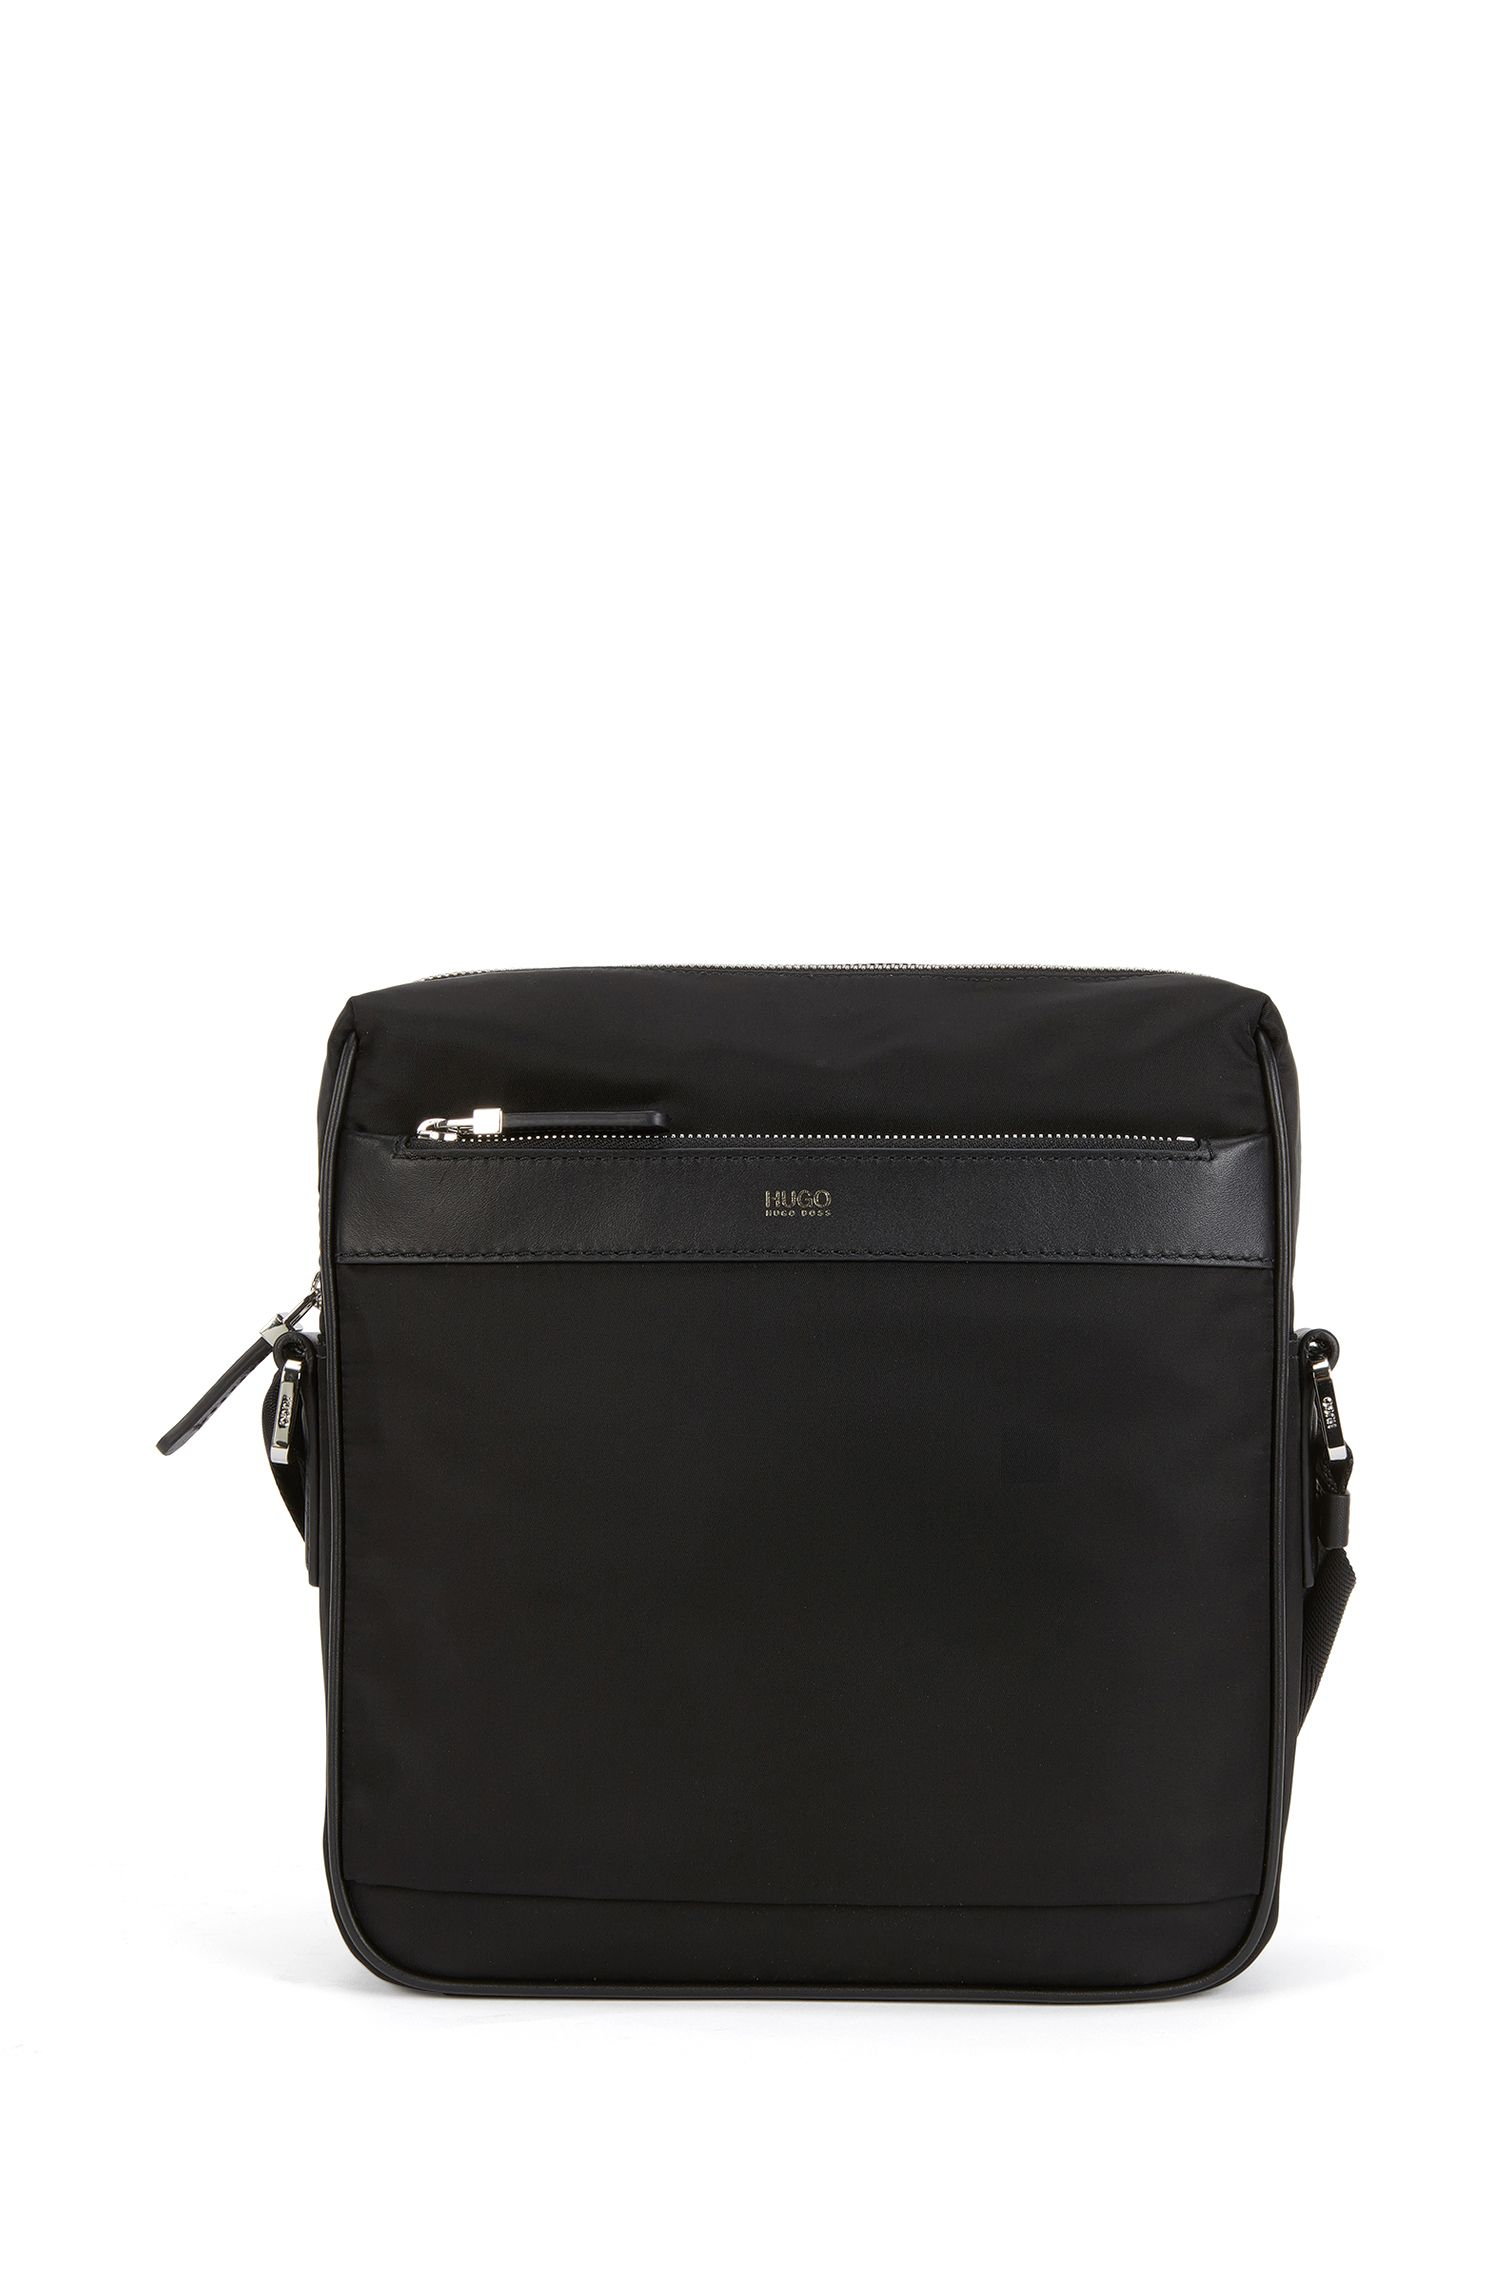 Lightweight cross-body bag with leather trim